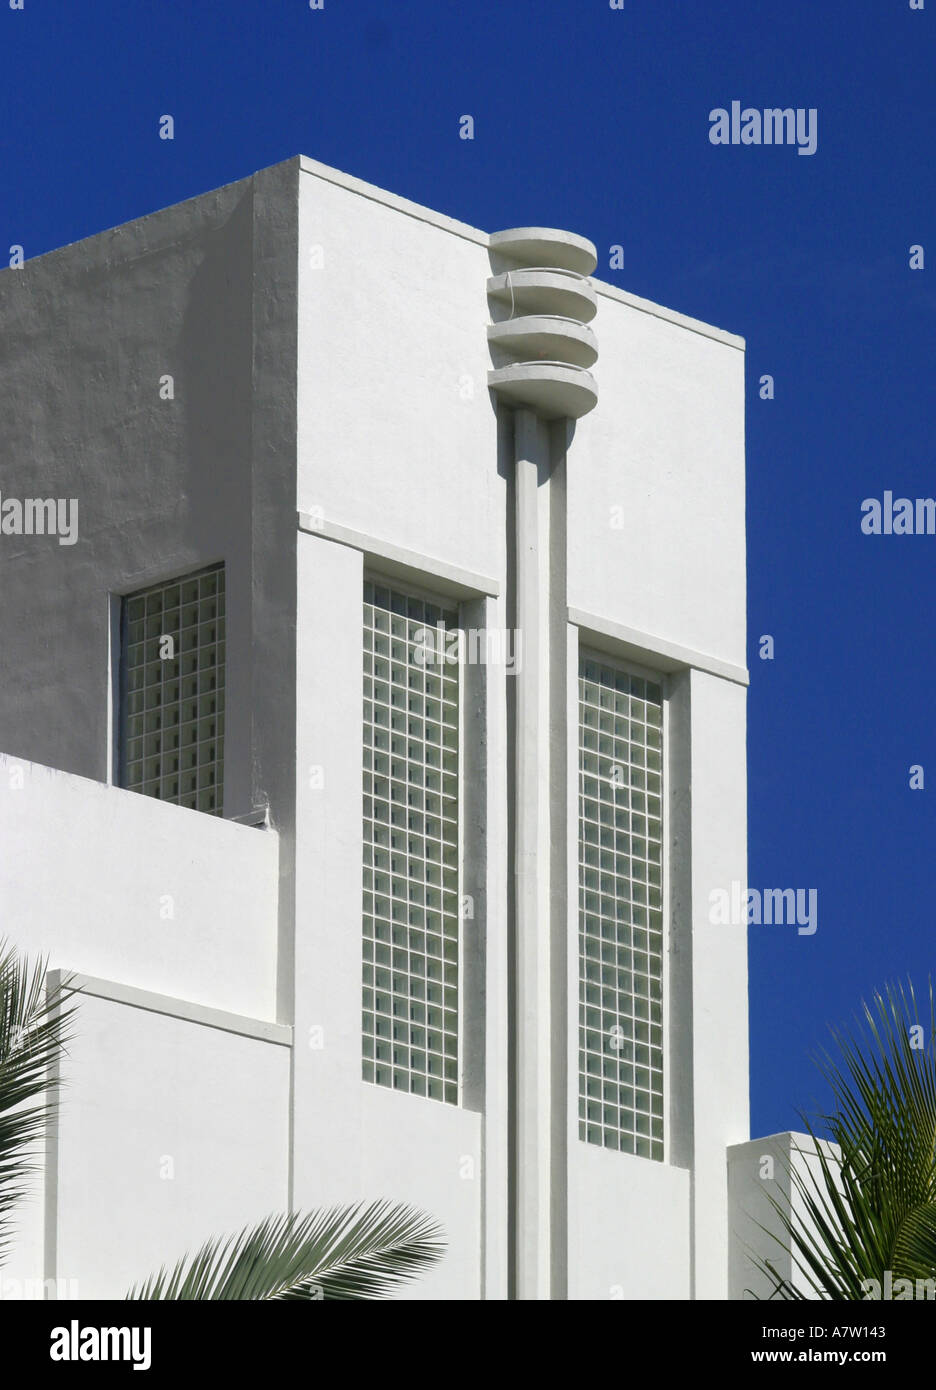 Art deco style architecture - Miami South Beach America Florida Usa Art Deco Style Architecture Building E